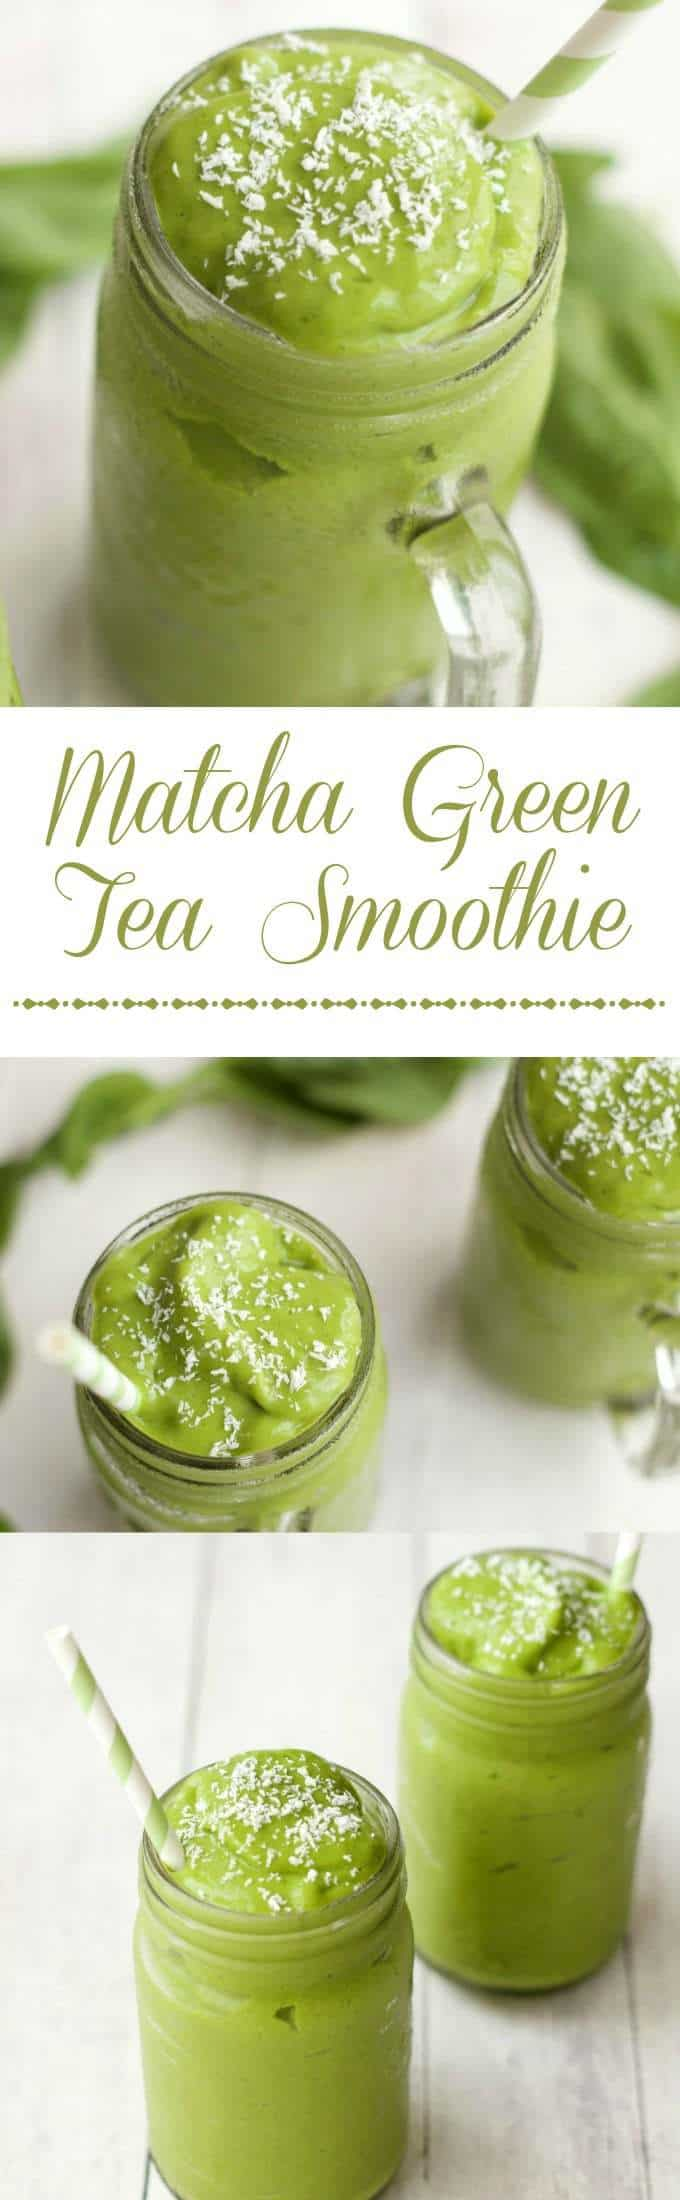 Matcha Green Tea Smoothie, quick and easy 5-Ingredient recipe. #vegan #lovingitvegan #matcha #greentea #greensmoothie #smoothie #glutenfree #dairyfree